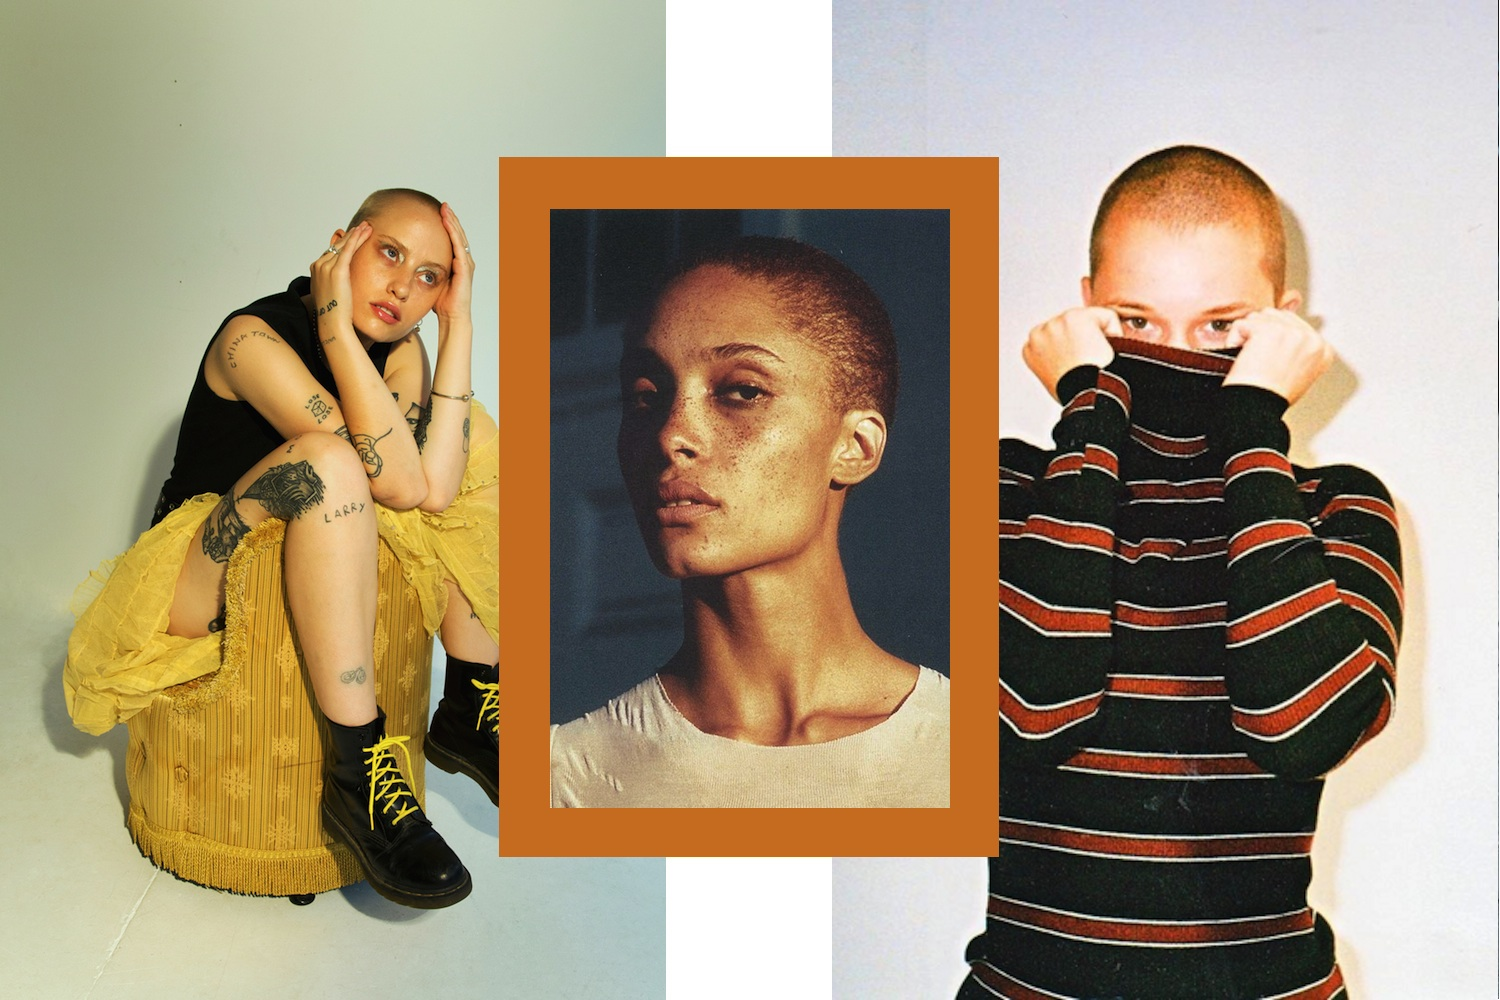 Images courtesy of @Alana Derksen, Adwoa Aboah (photo by Paul Maffi) @alexisjadegross